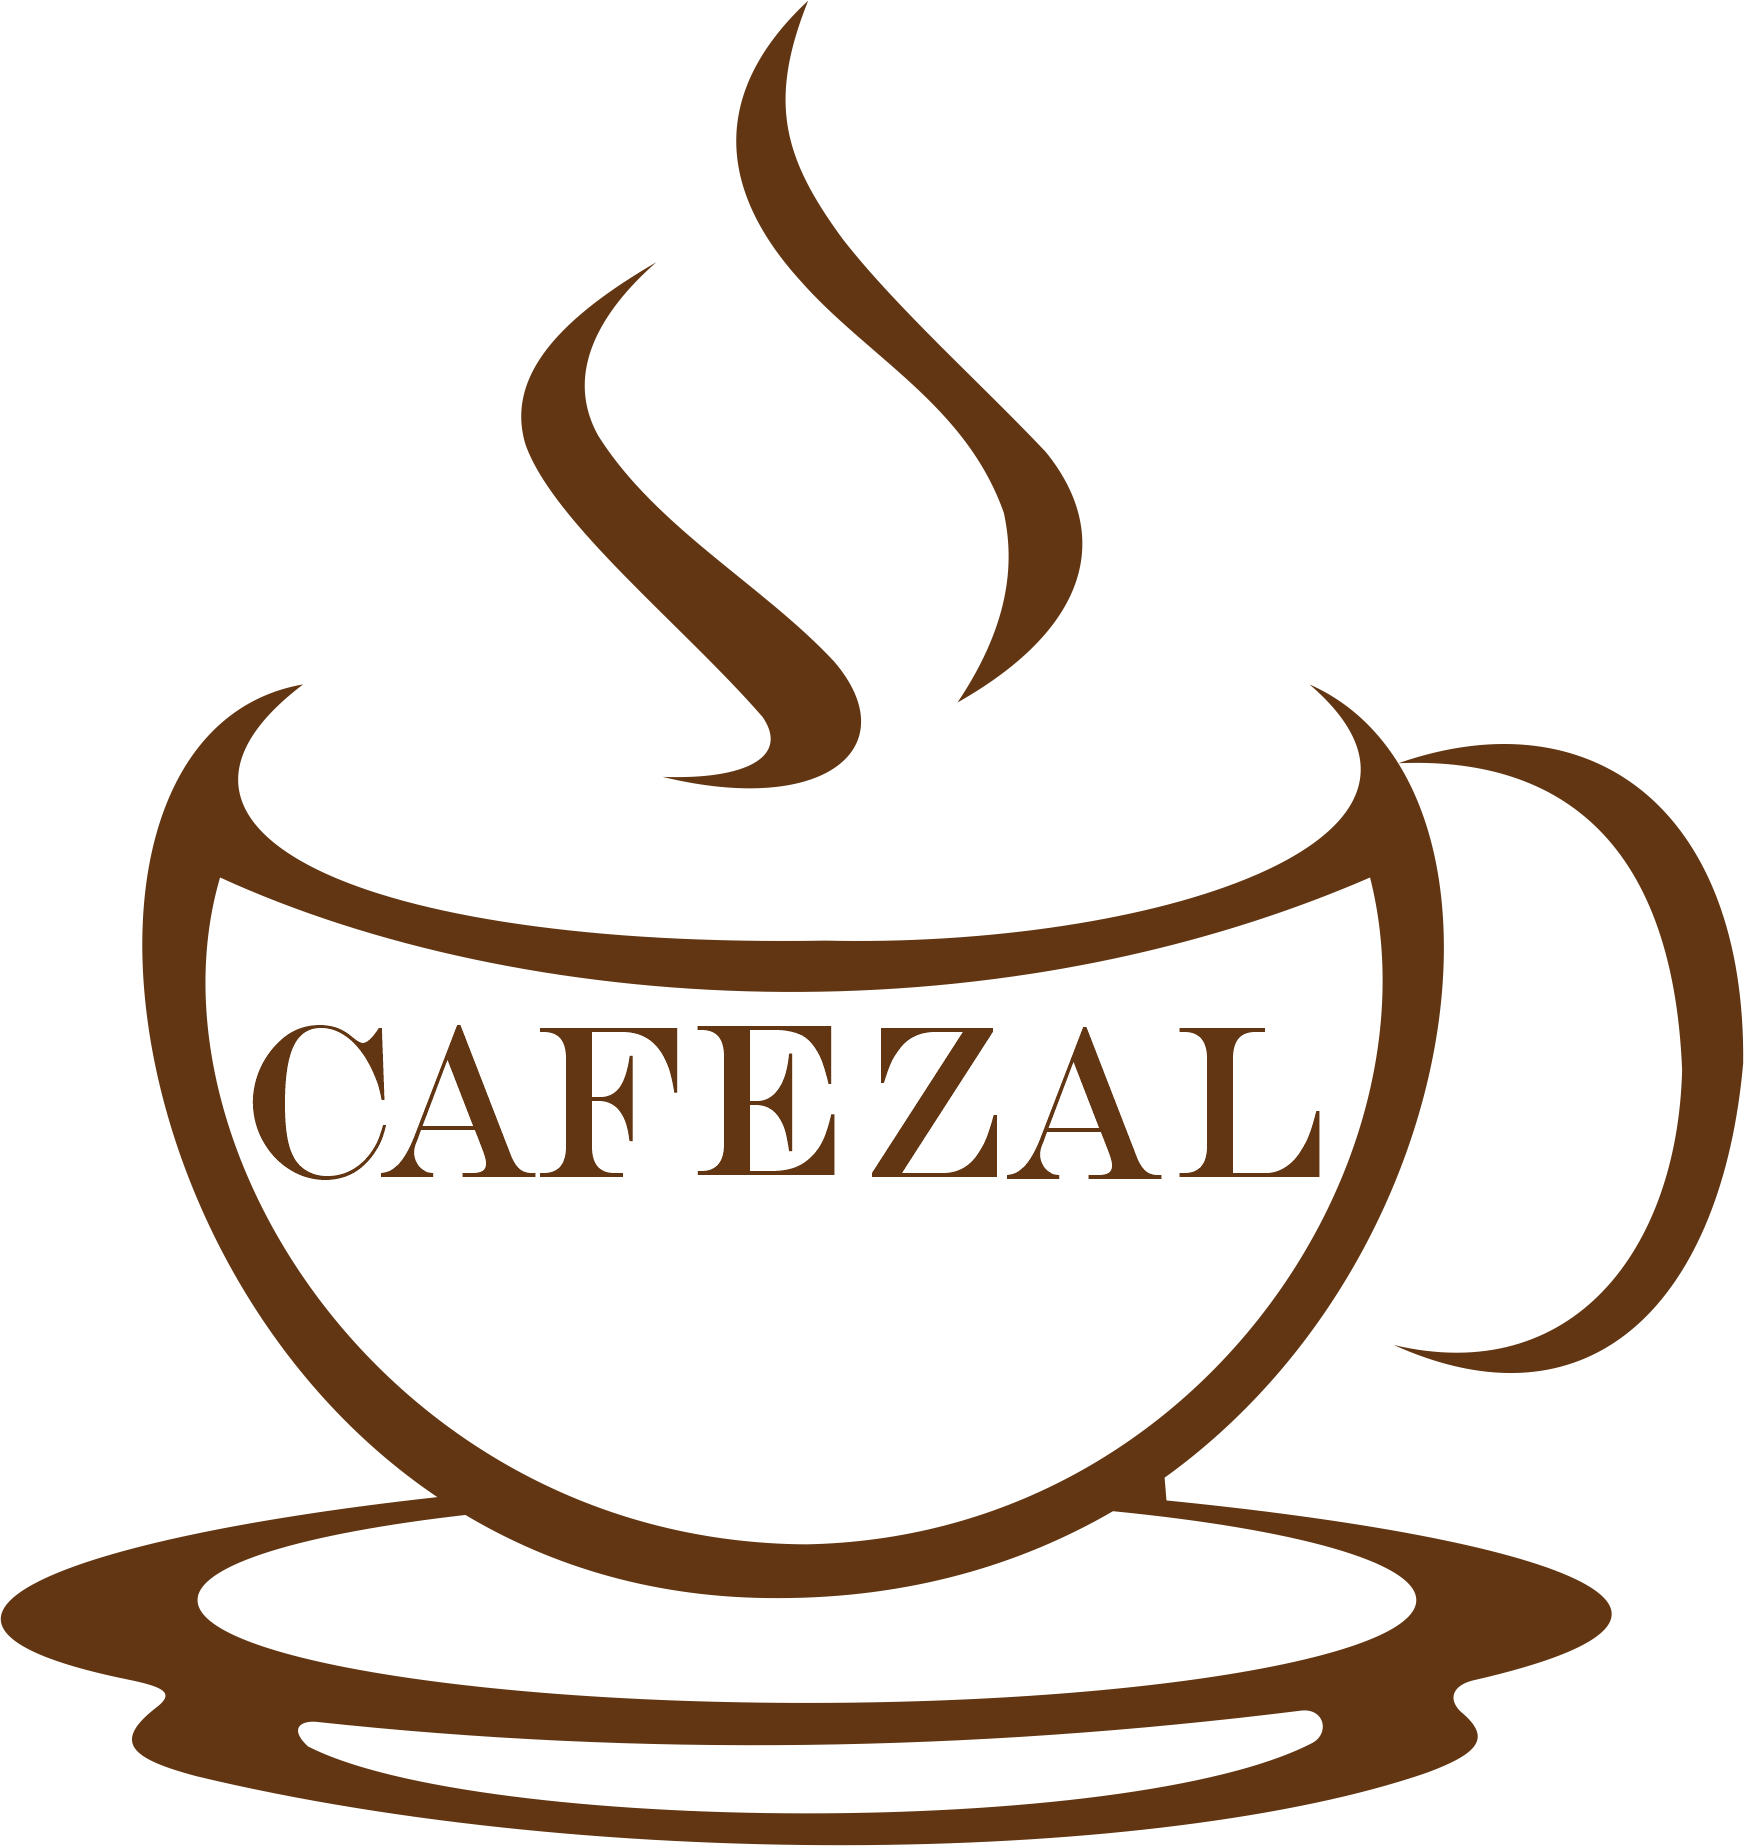 Turma do Cafezal